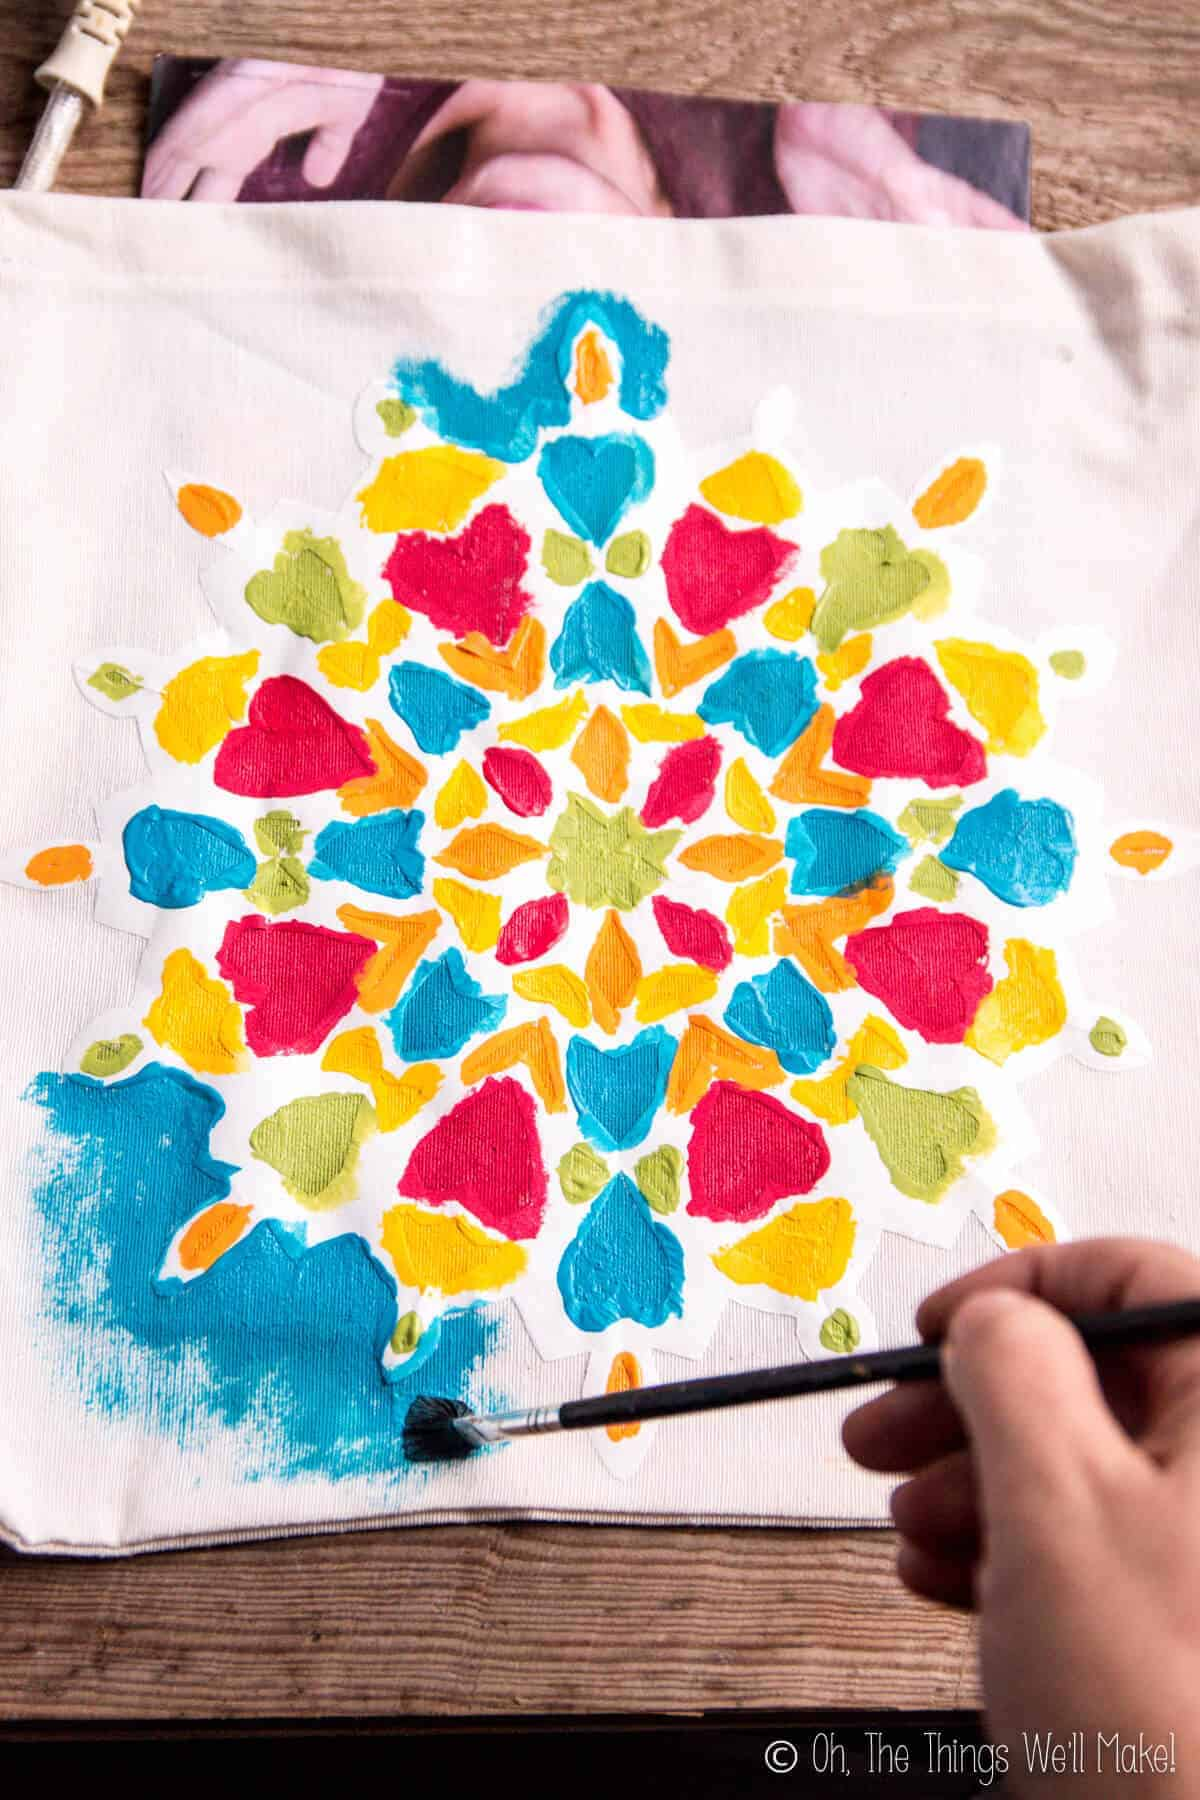 Painting on a paper snowflake stencil that has been adhered to a cloth bag, making a colorful, mandala-like design.